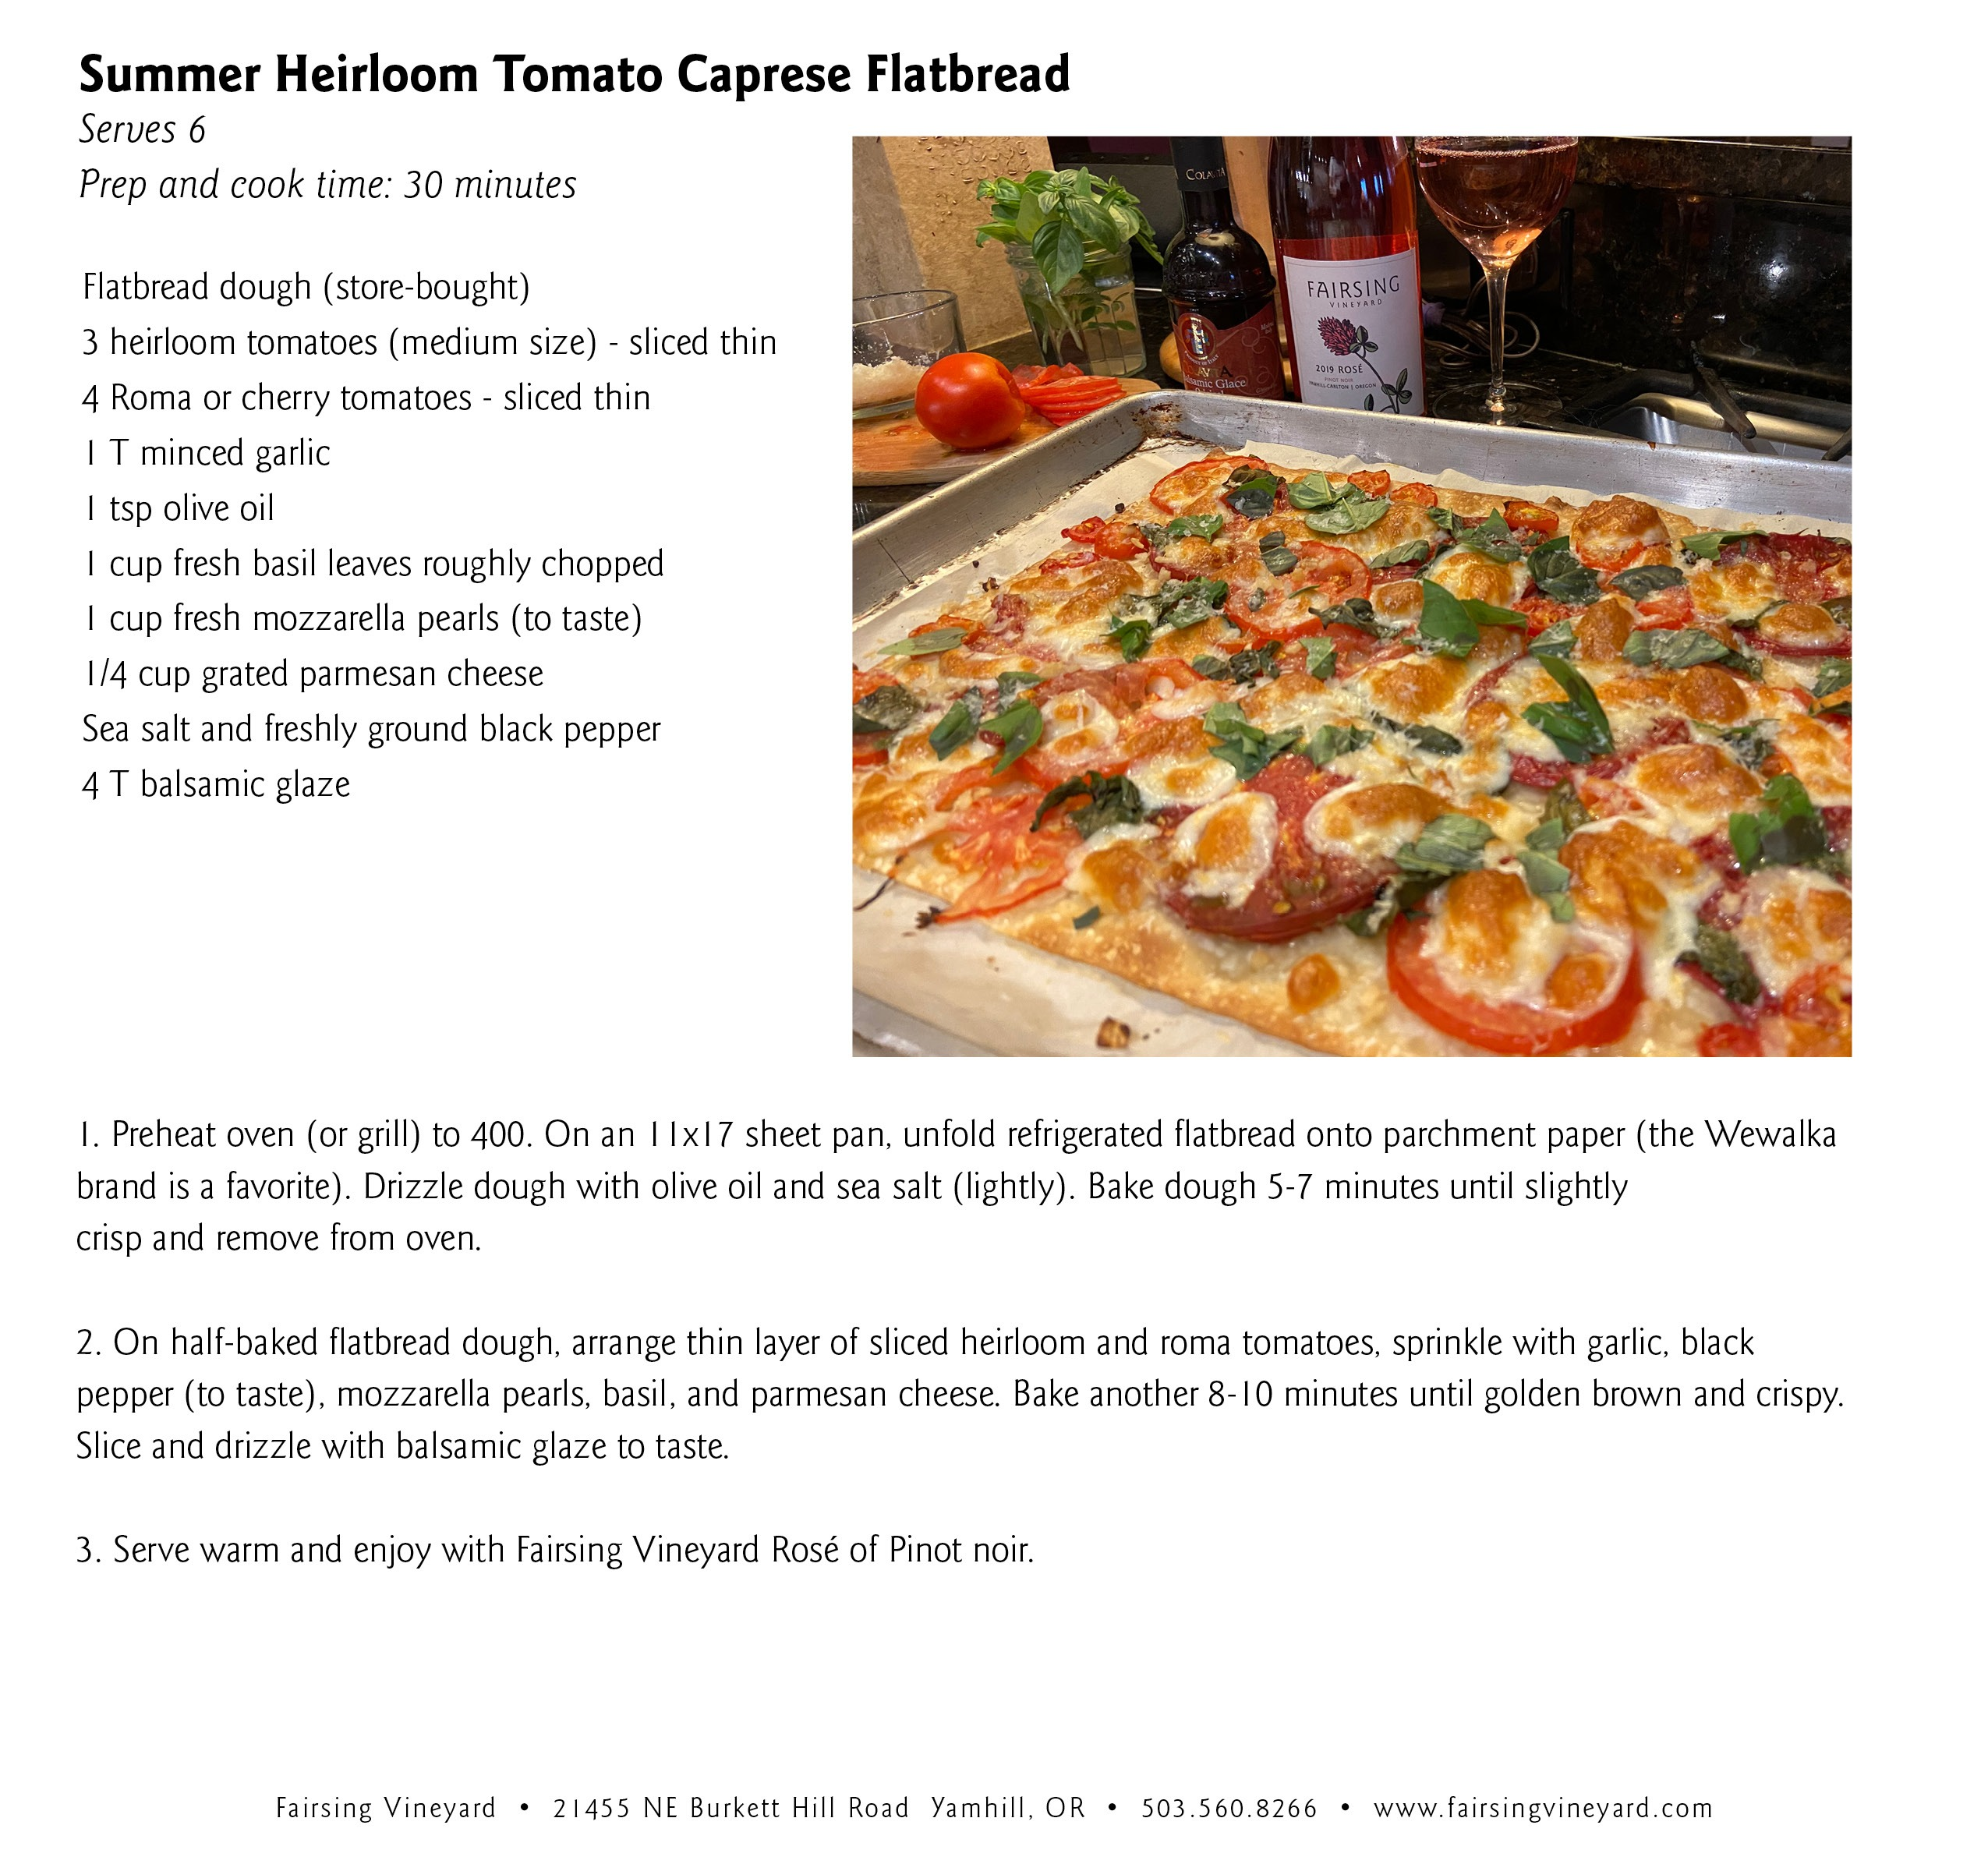 A quick dining favorite of Summer Heirloom Caprese flatbread pairs beautifully with the 2019 Fairsing Vineyard Rosé of Pinot noir